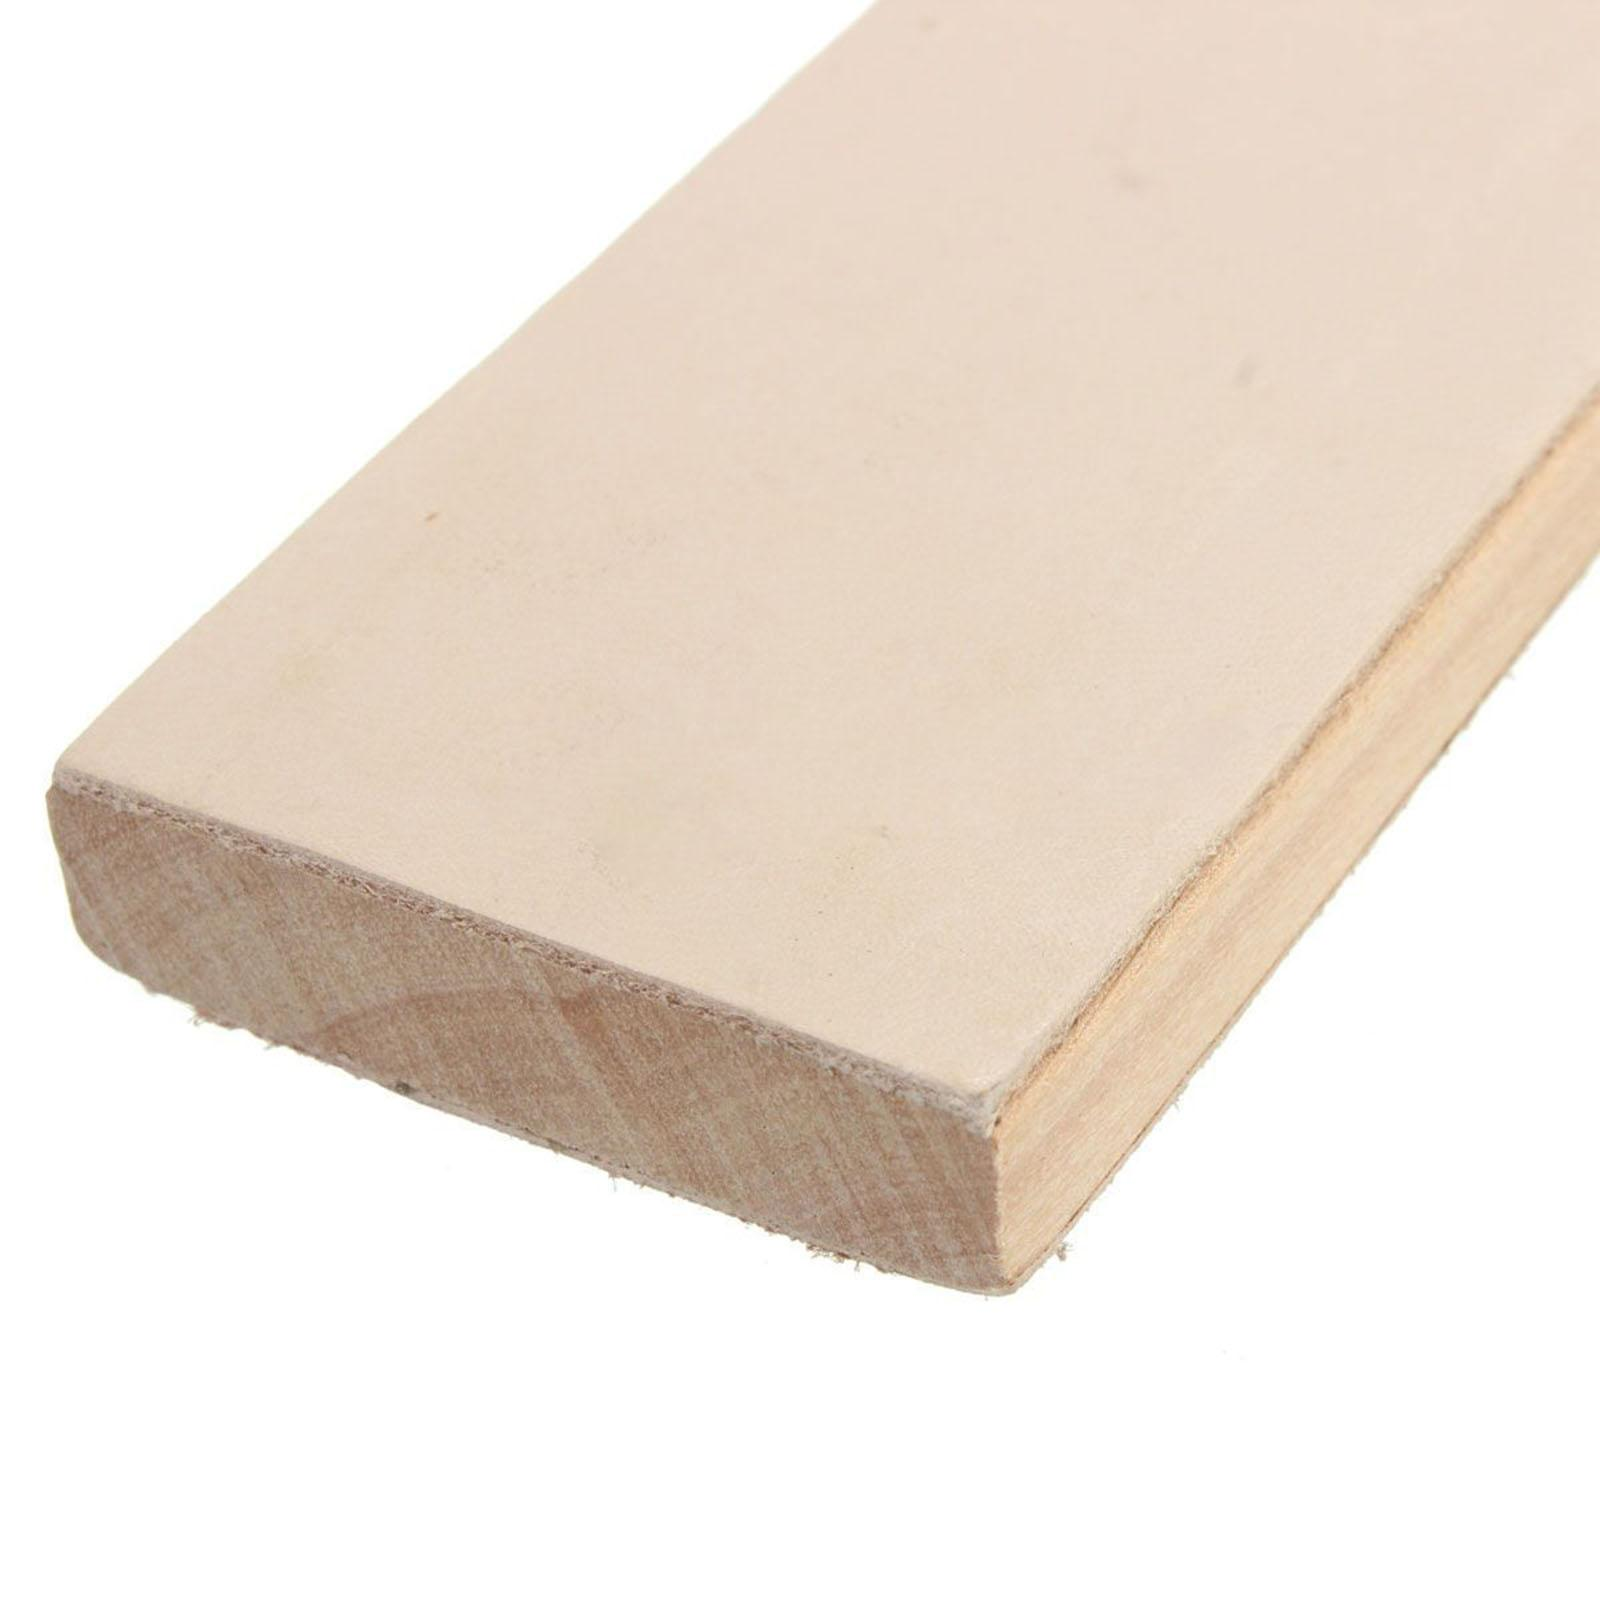 New Wooden Handle Leather Sharpening Strop Handmade Razors Polishing Board For Home Tools